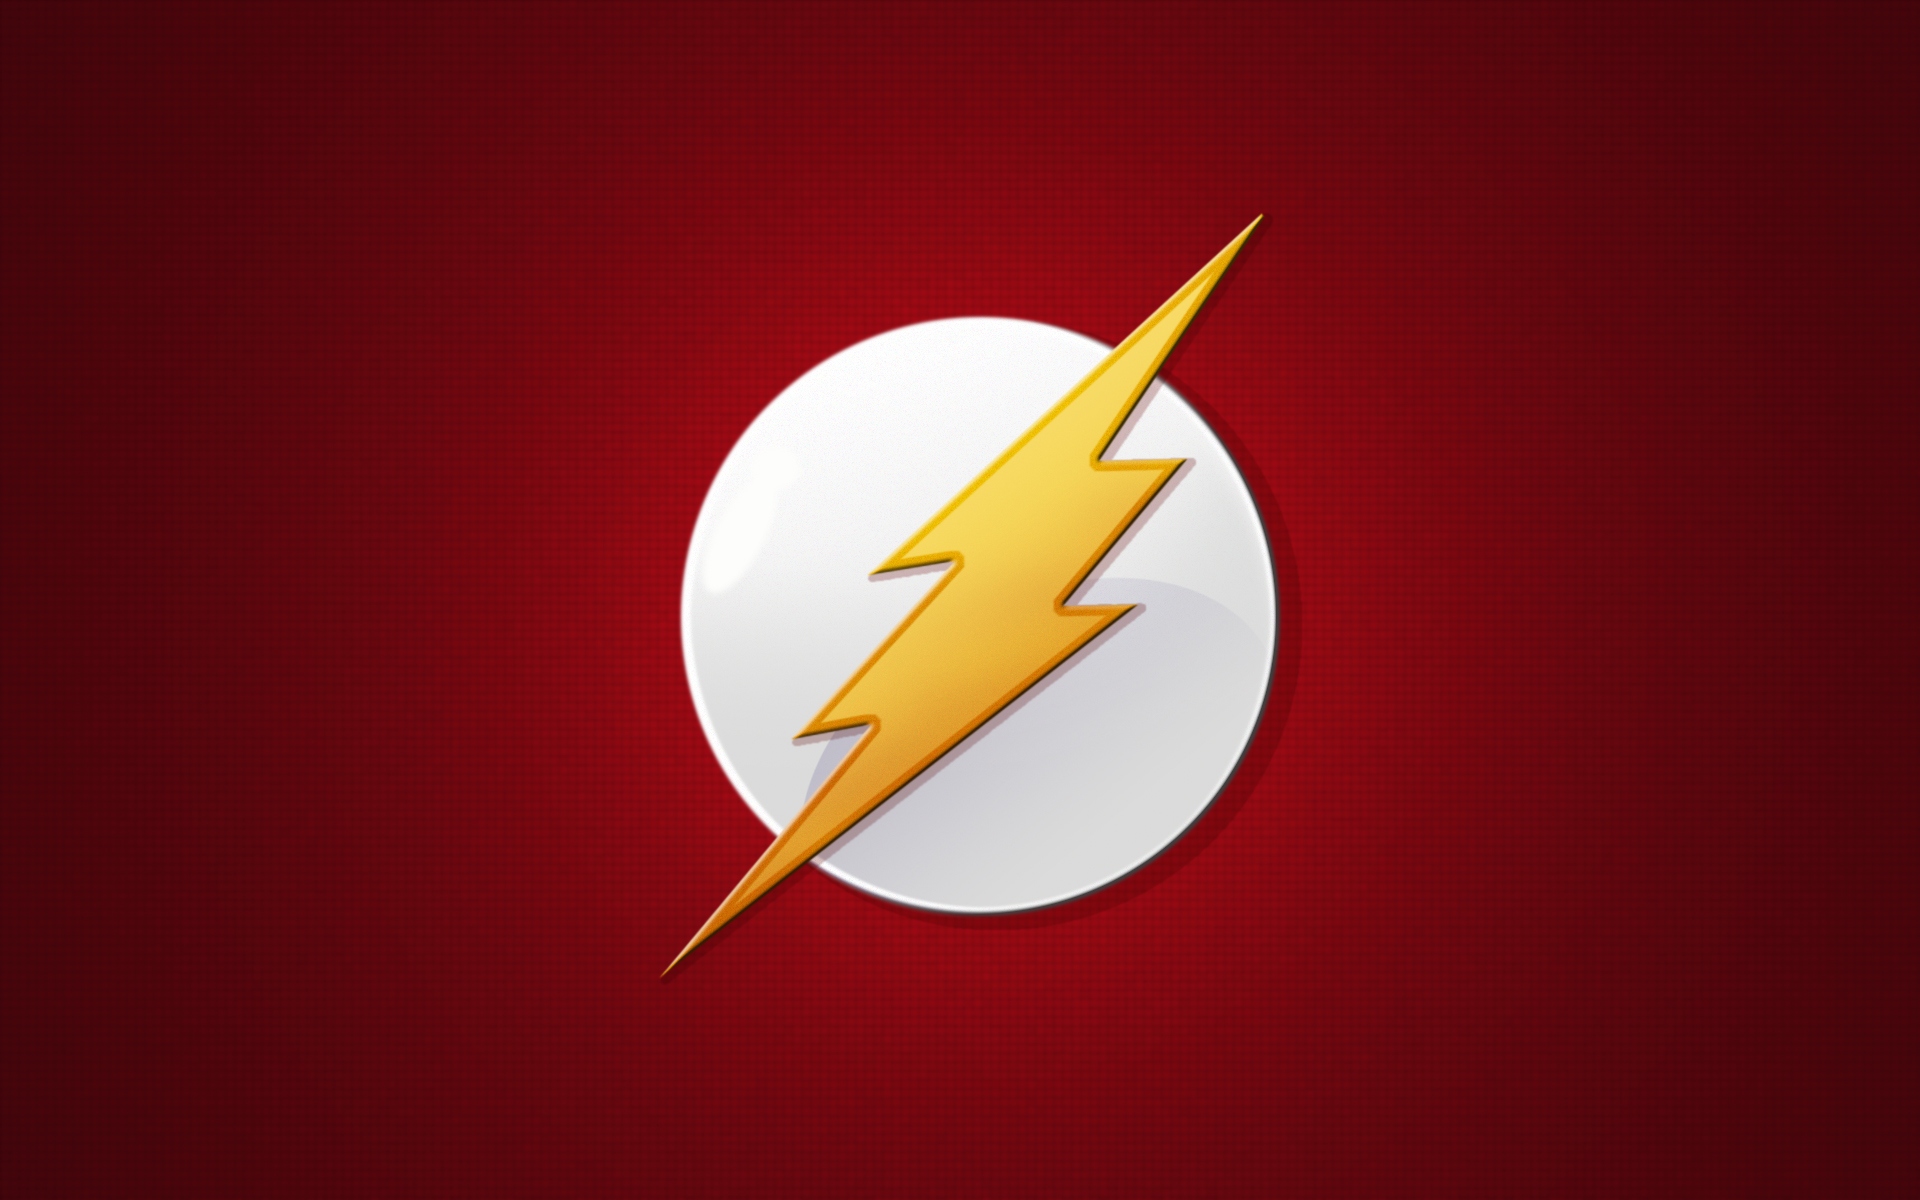 Flash BGnew imagenes de superheroes